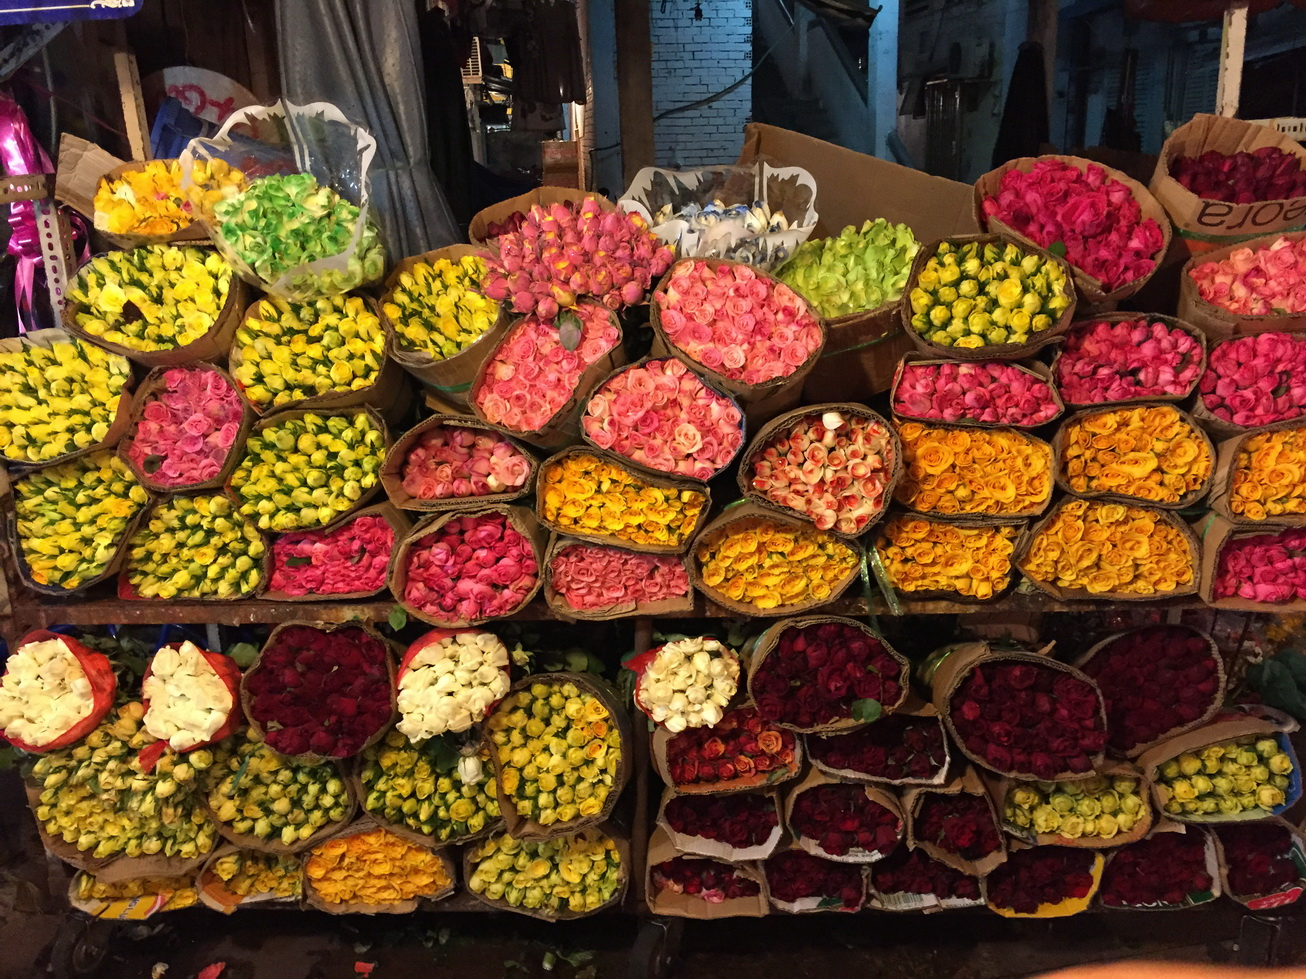 There are many kinds of flowers in the Ho Thi Ky flower market